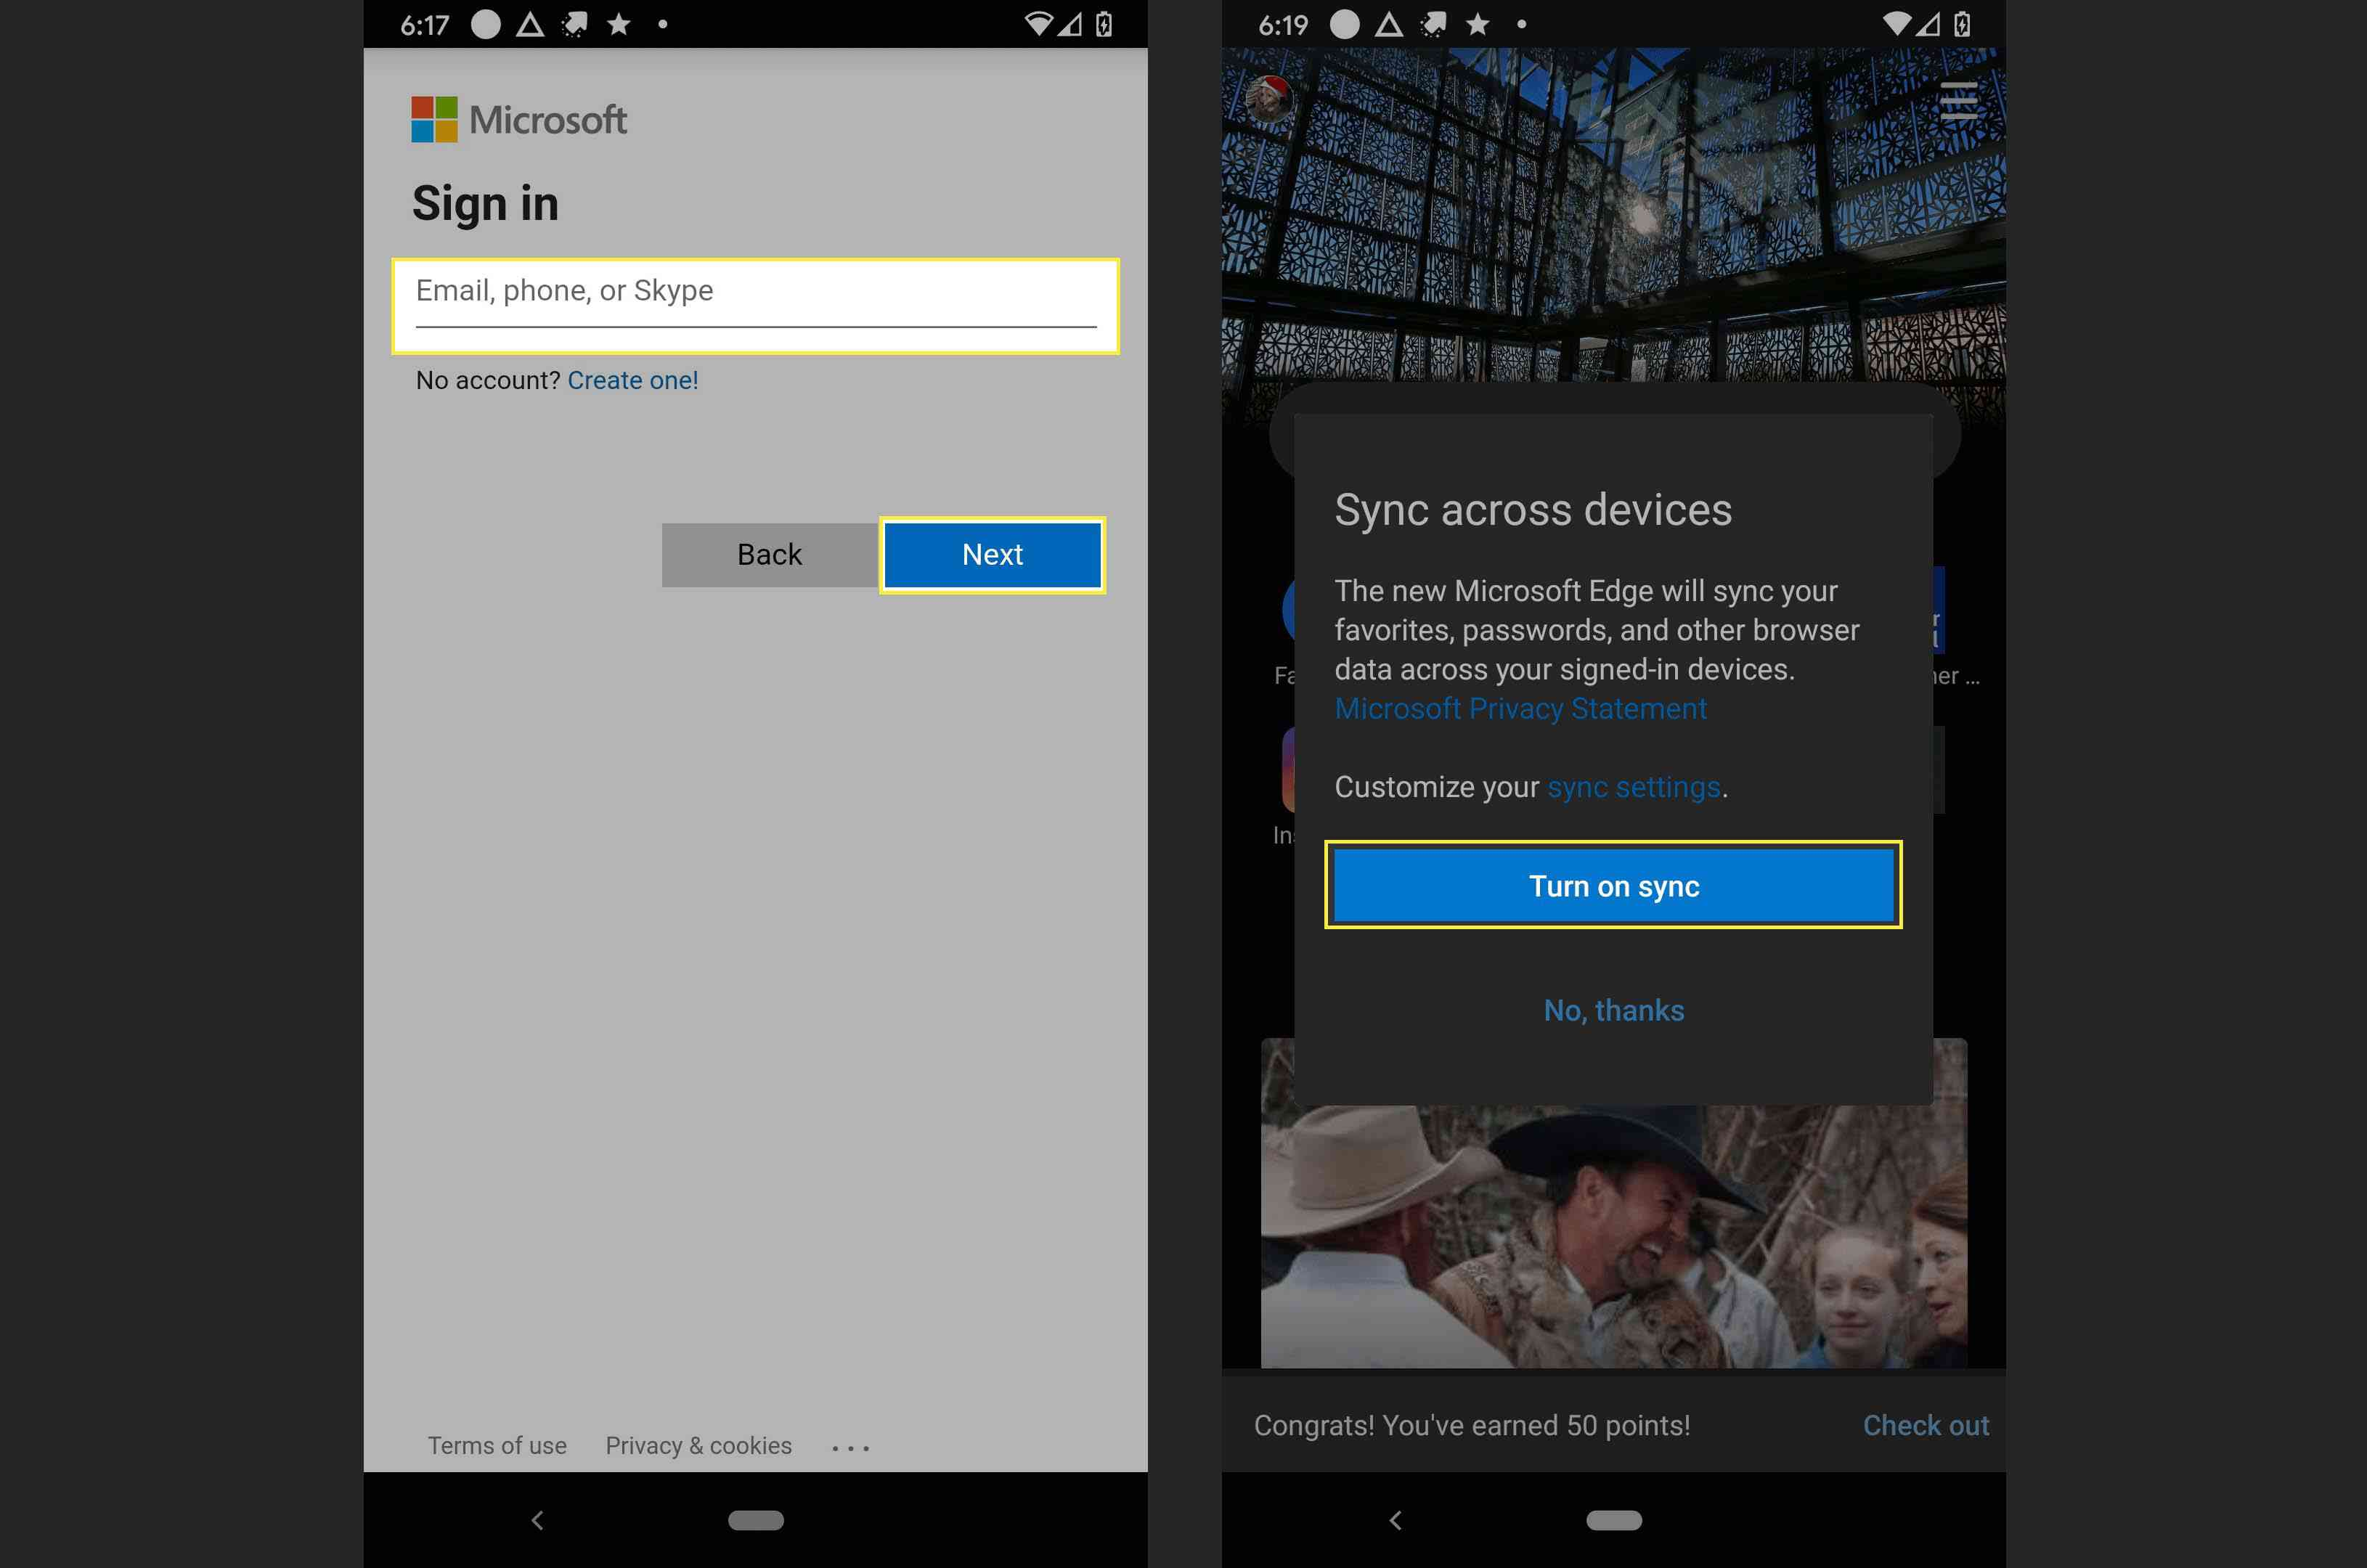 Completing the signing into Microsoft to sync favorites in MS Edge on Android.